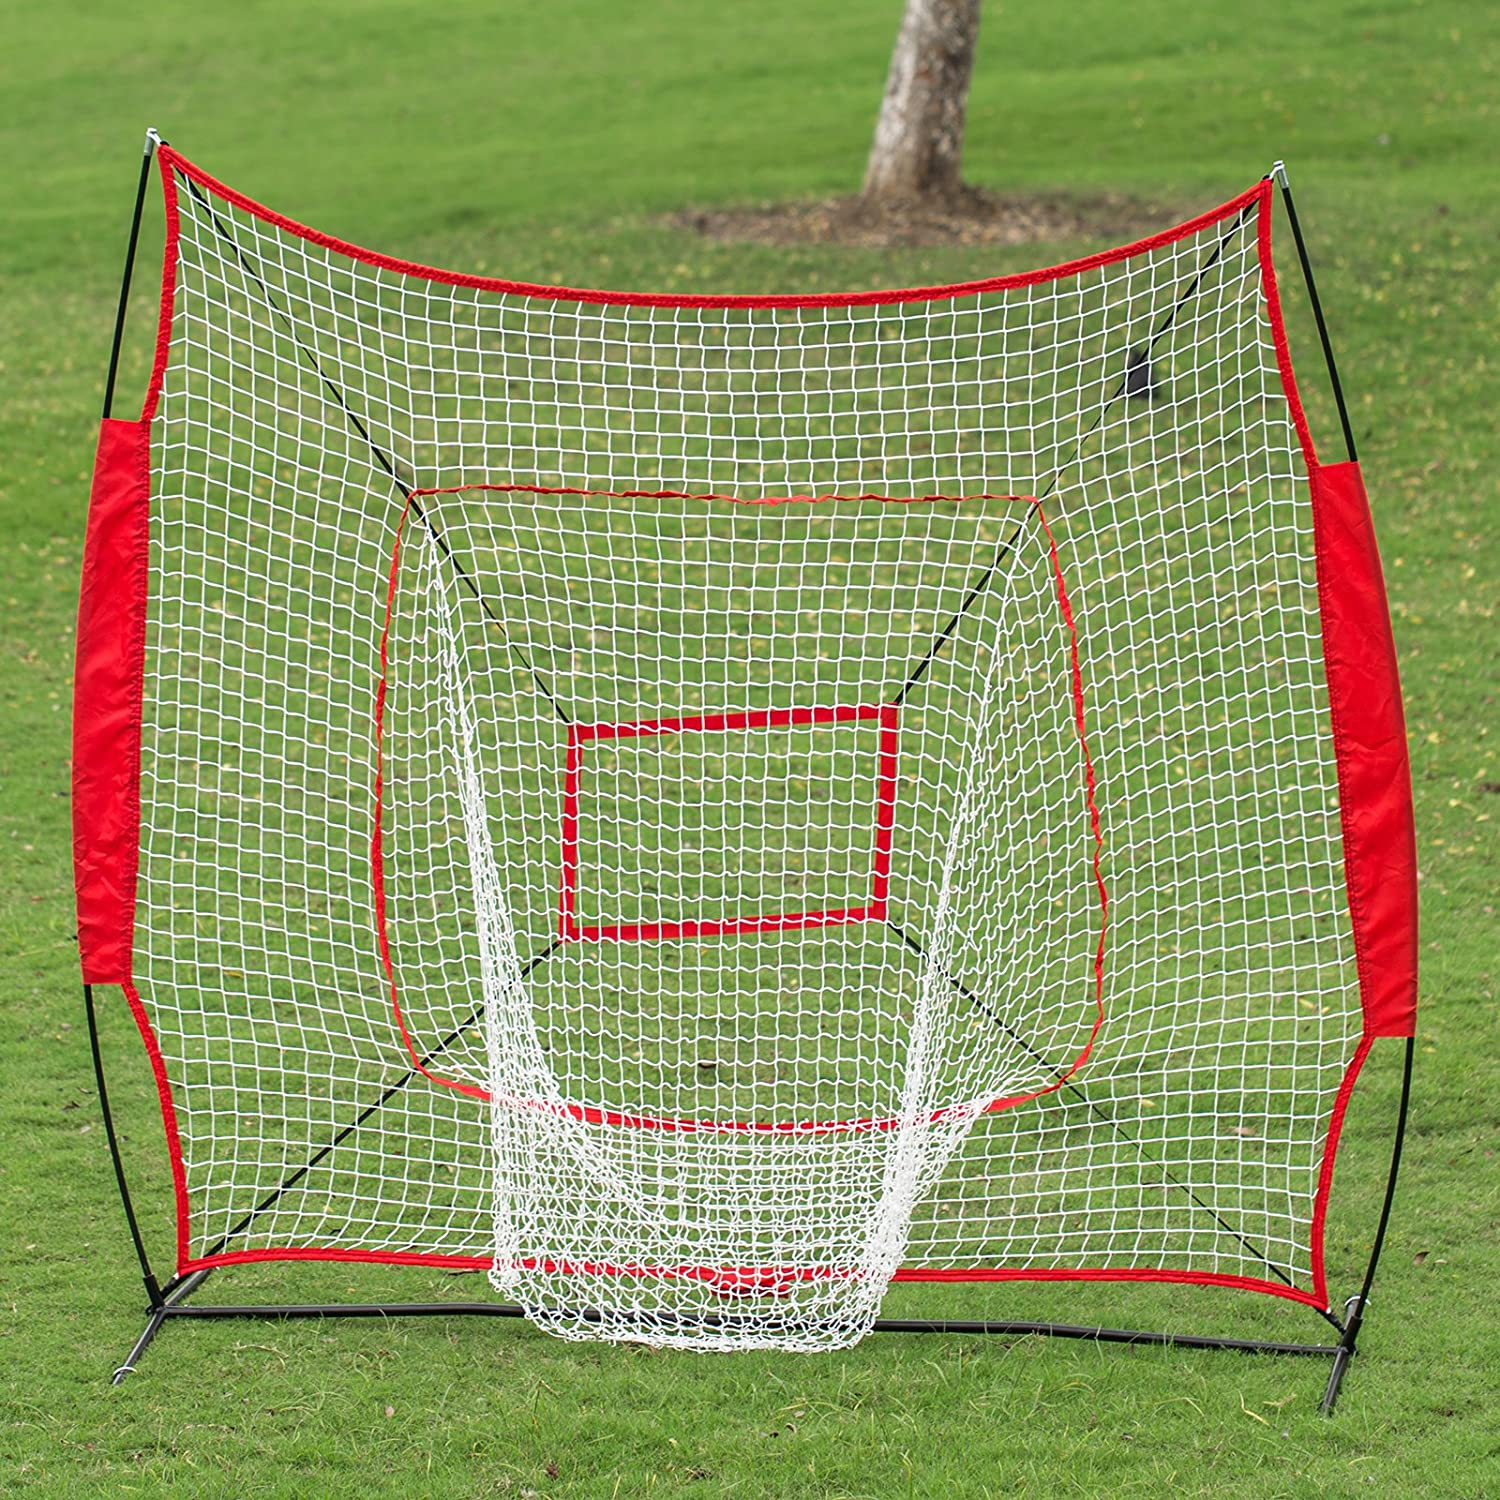 7ft Portable Baseball Tennis Practice Net Pitching Batting Hitting Training Aid Sports Outdoor Indoor Cikonielf Baseball Net